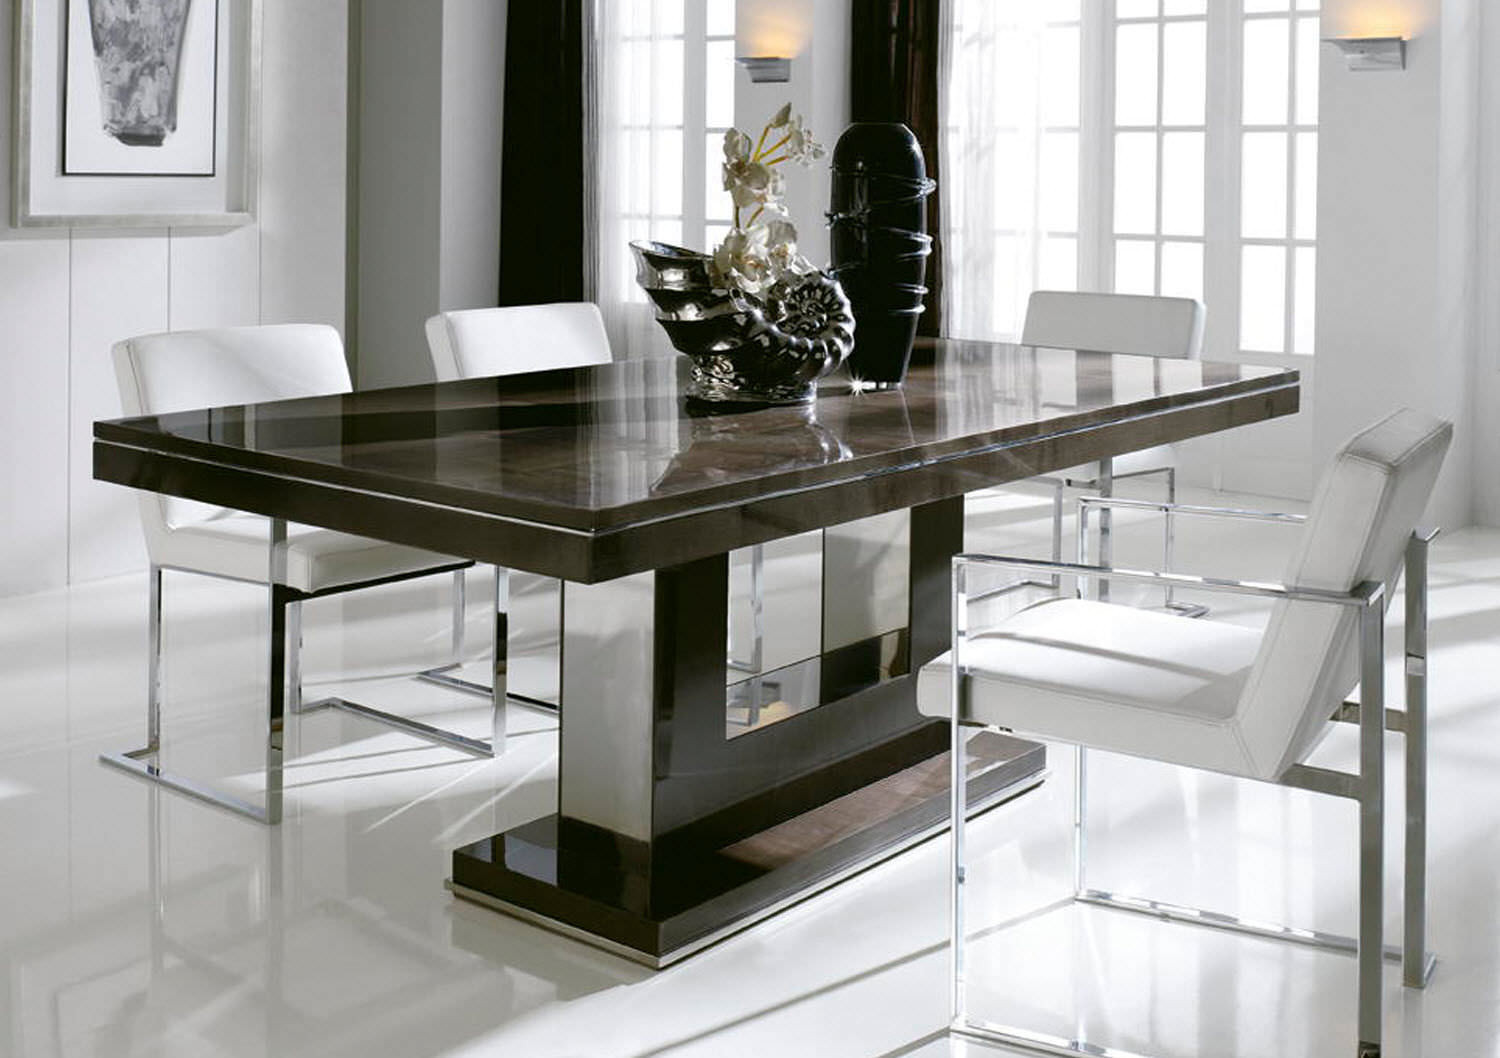 Best ideas about Modern Dining Table Set . Save or Pin Entertain Your Guests with Perfect Dining Table MidCityEast Now.